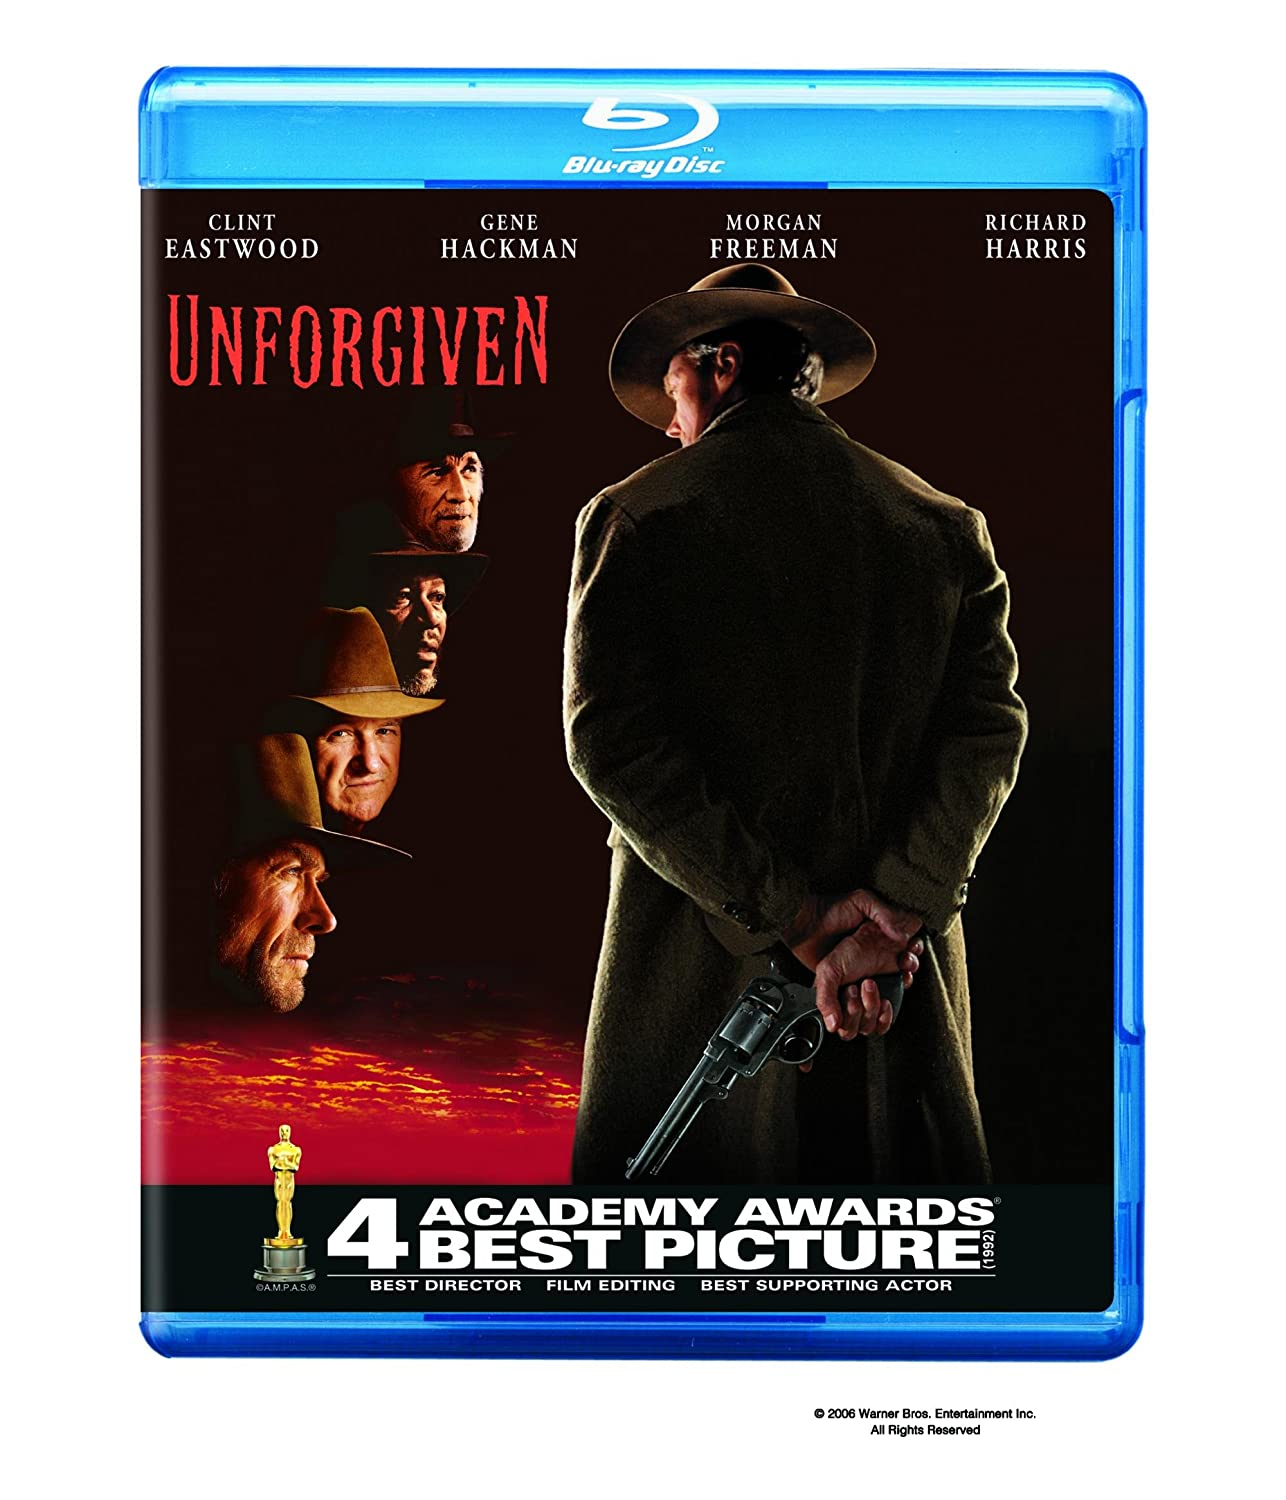 Unforgiven (1992) [Blu-ray] Clint Eastwood Gene Hackman Morgan Freeman Richard Harris (i)